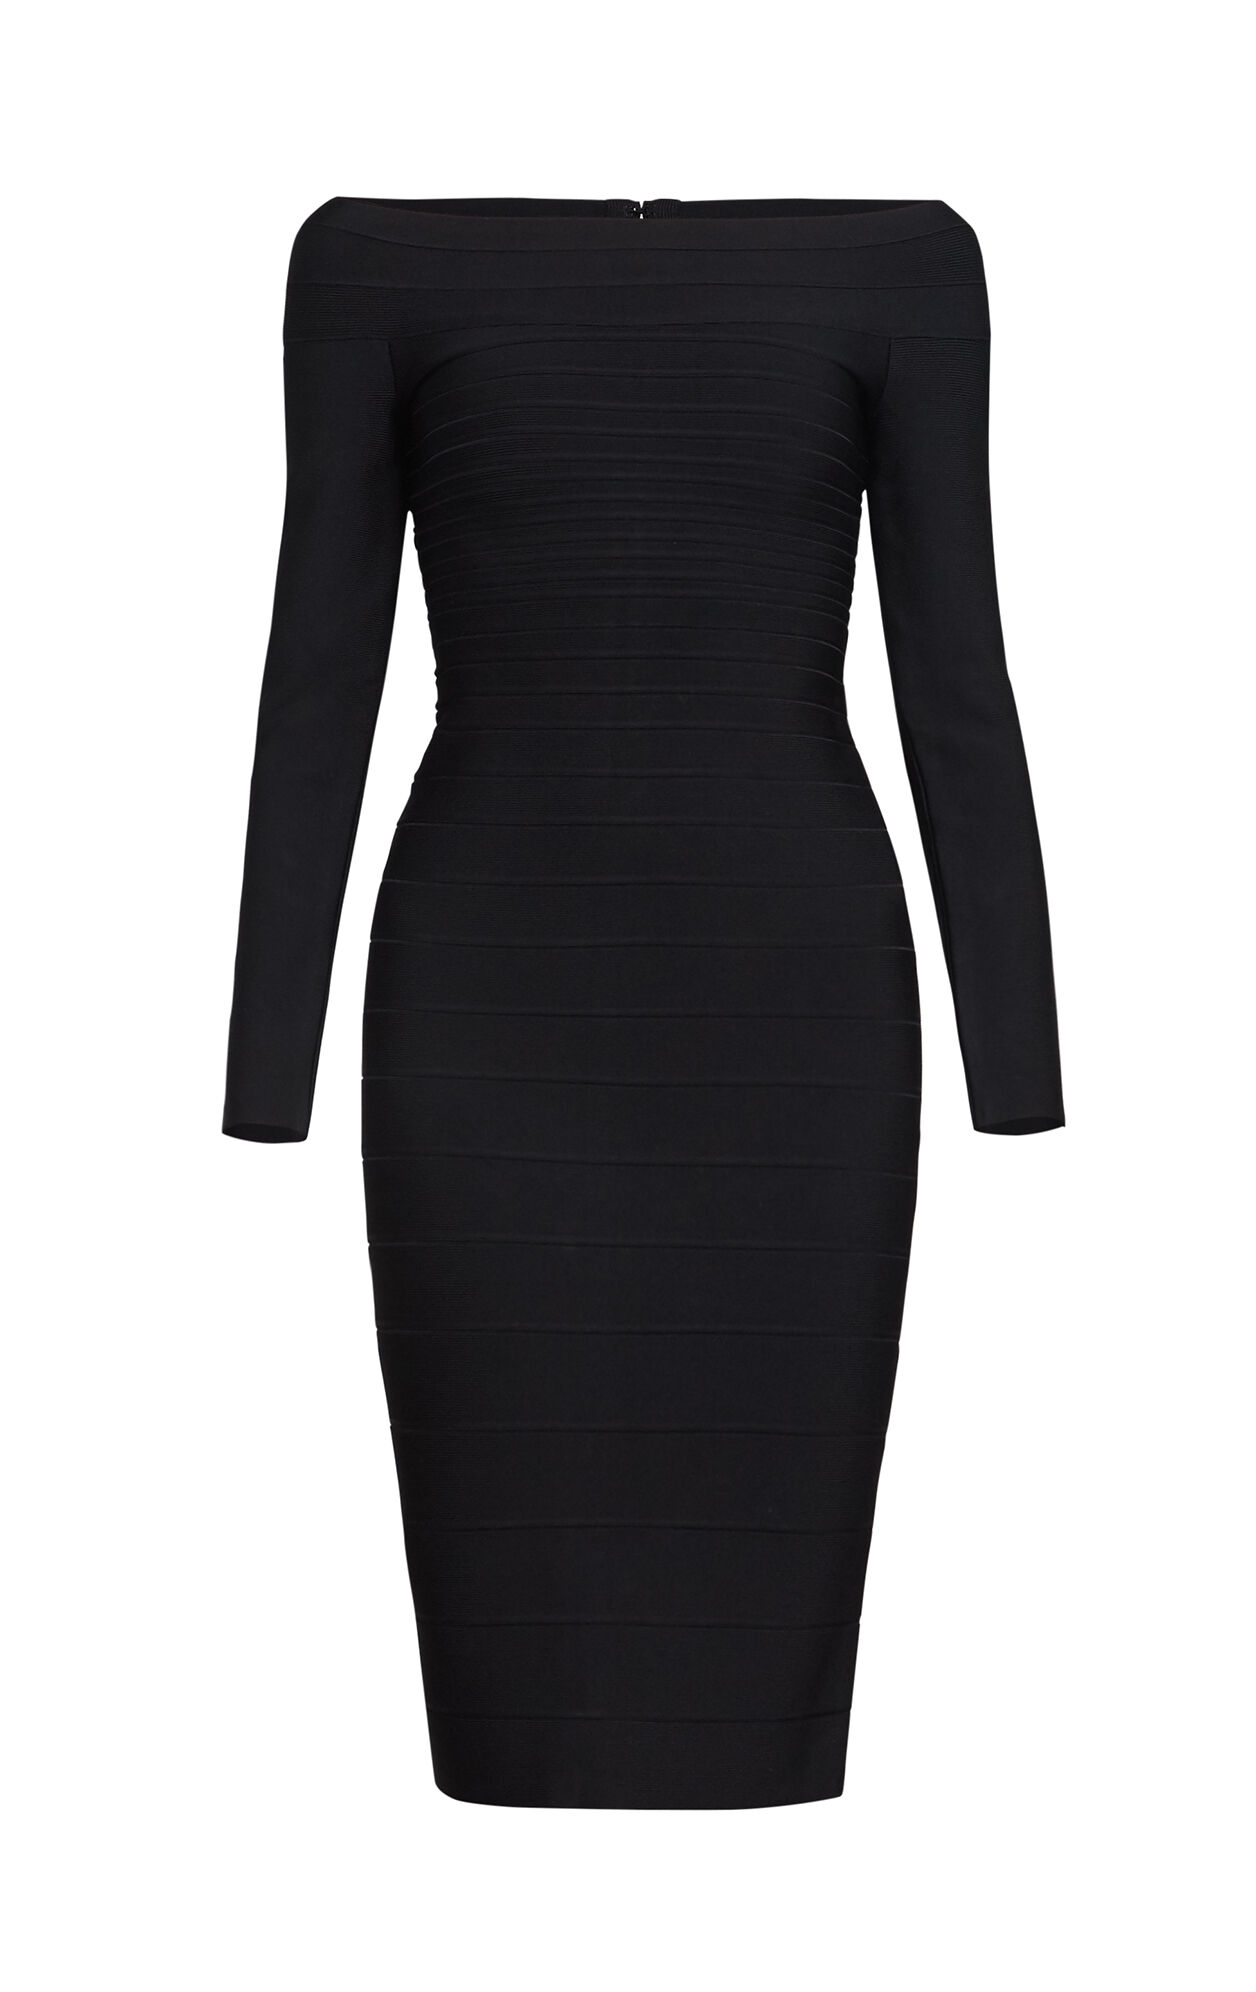 Nicola Essential Bandage Dress